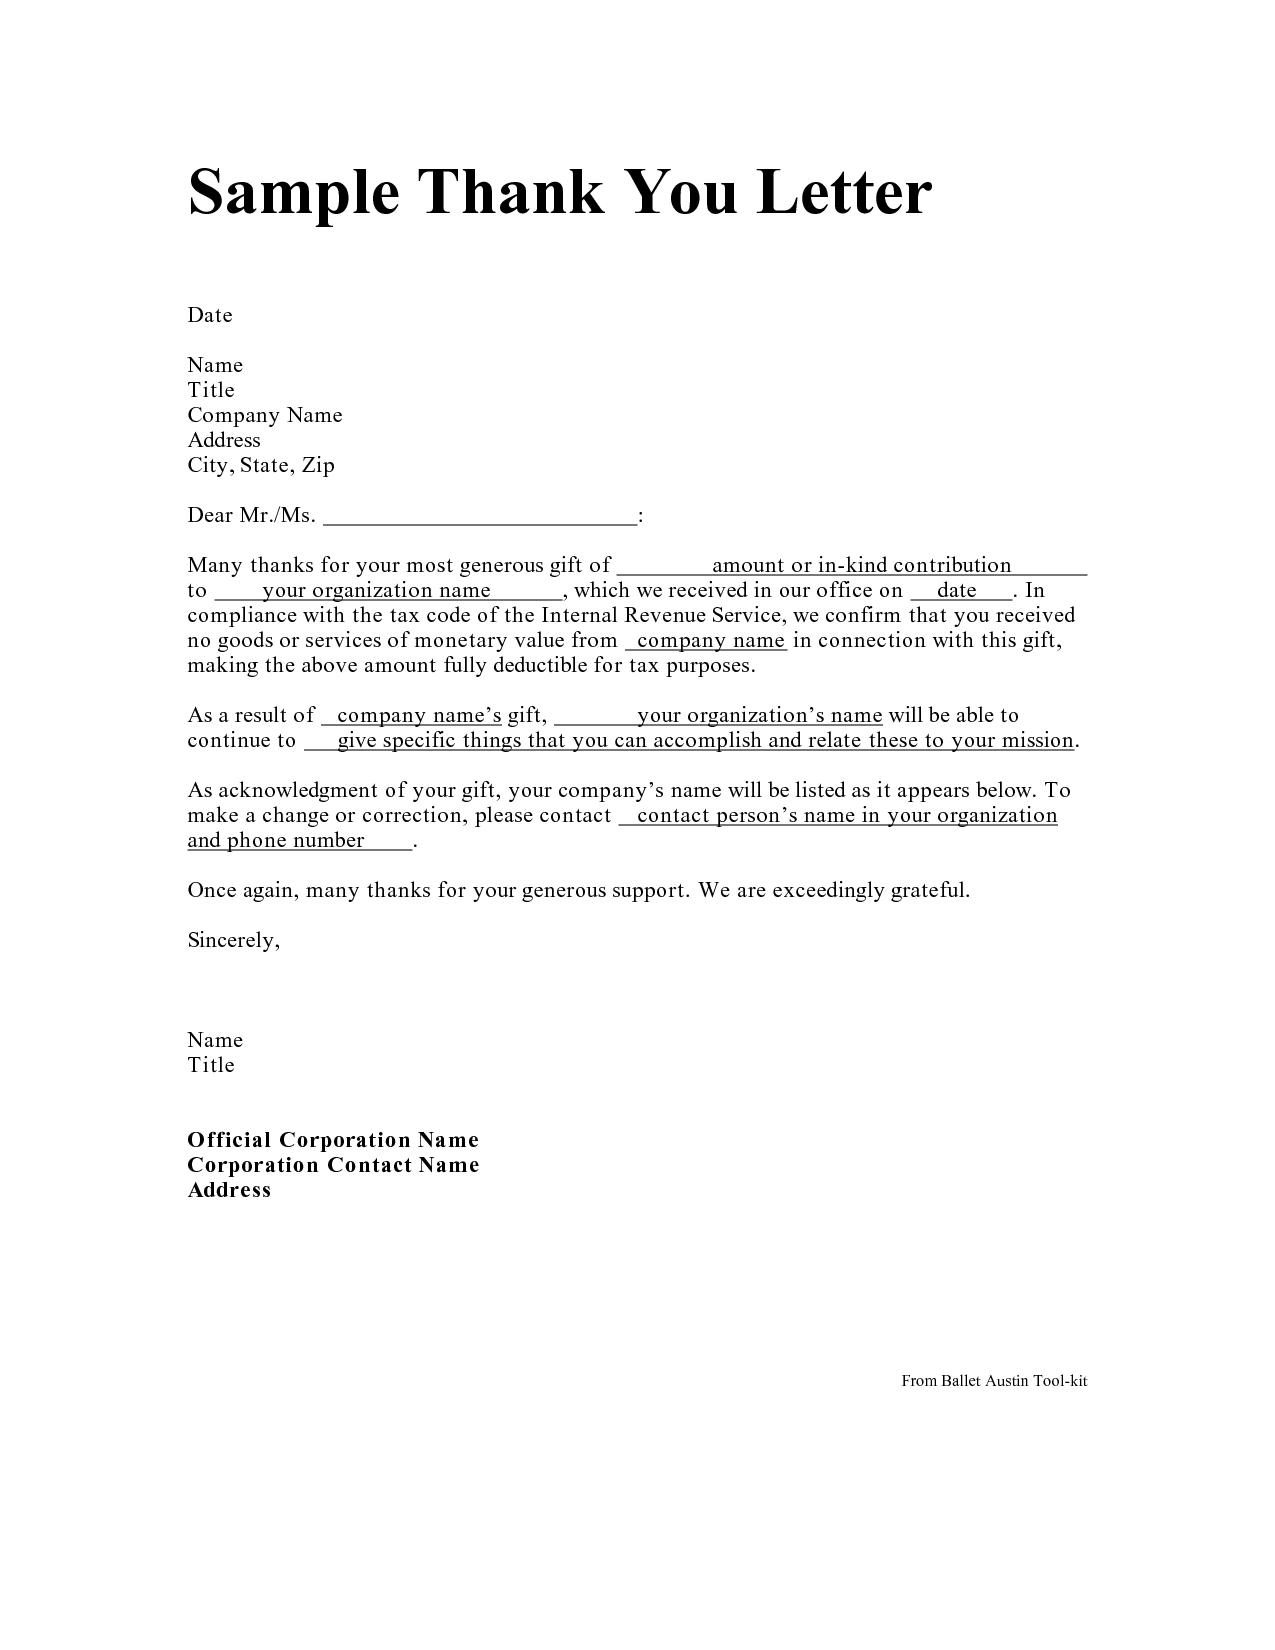 Non Profit Donation Letter Template - Personal Thank You Letter Personal Thank You Letter Samples